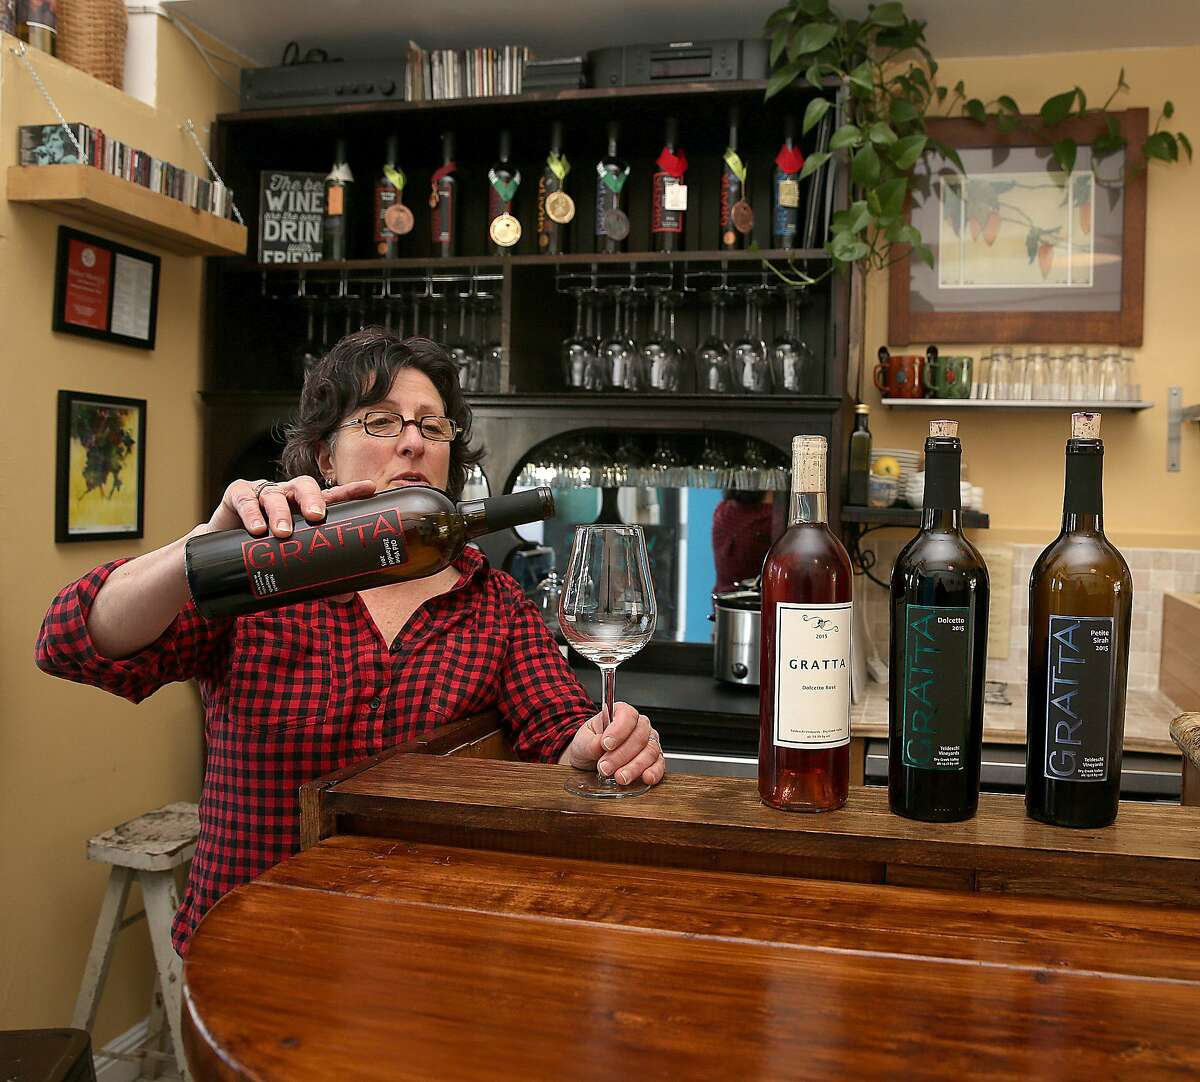 Barbara Gratta of Gratta Wines shows her tasting room at the Butchertown Gourmet Marketplace on Tuesday, March 7, 2017, in San Francisco, Calif.